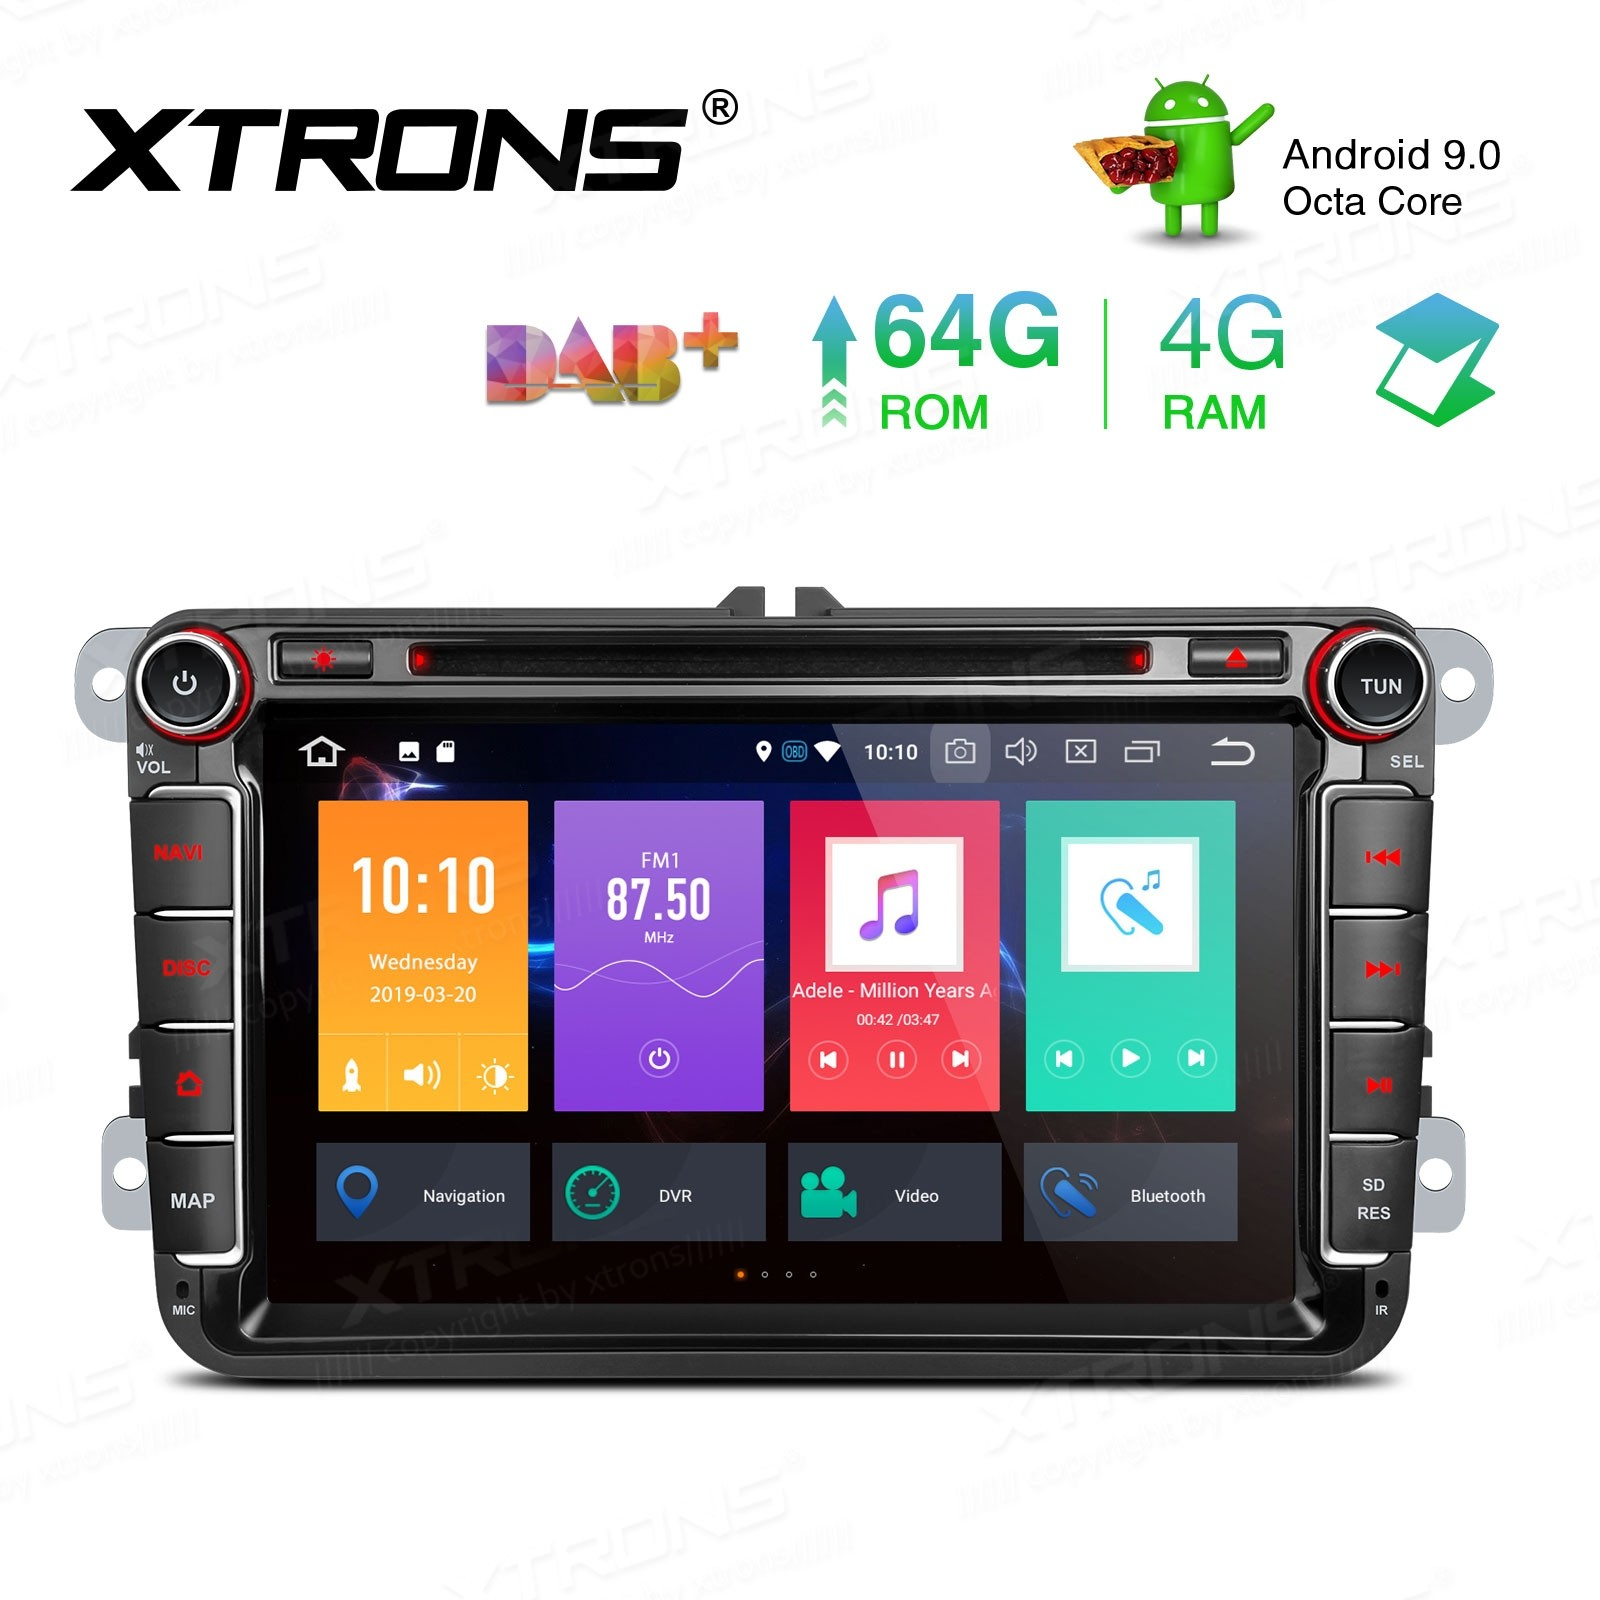 8 inch Android 9.0 Octa-Core 64G ROM+4G RAM Car DVD Player Multimedia GPS System Support CarAutoPlay Custom Fit for VW / Seat / Skoda